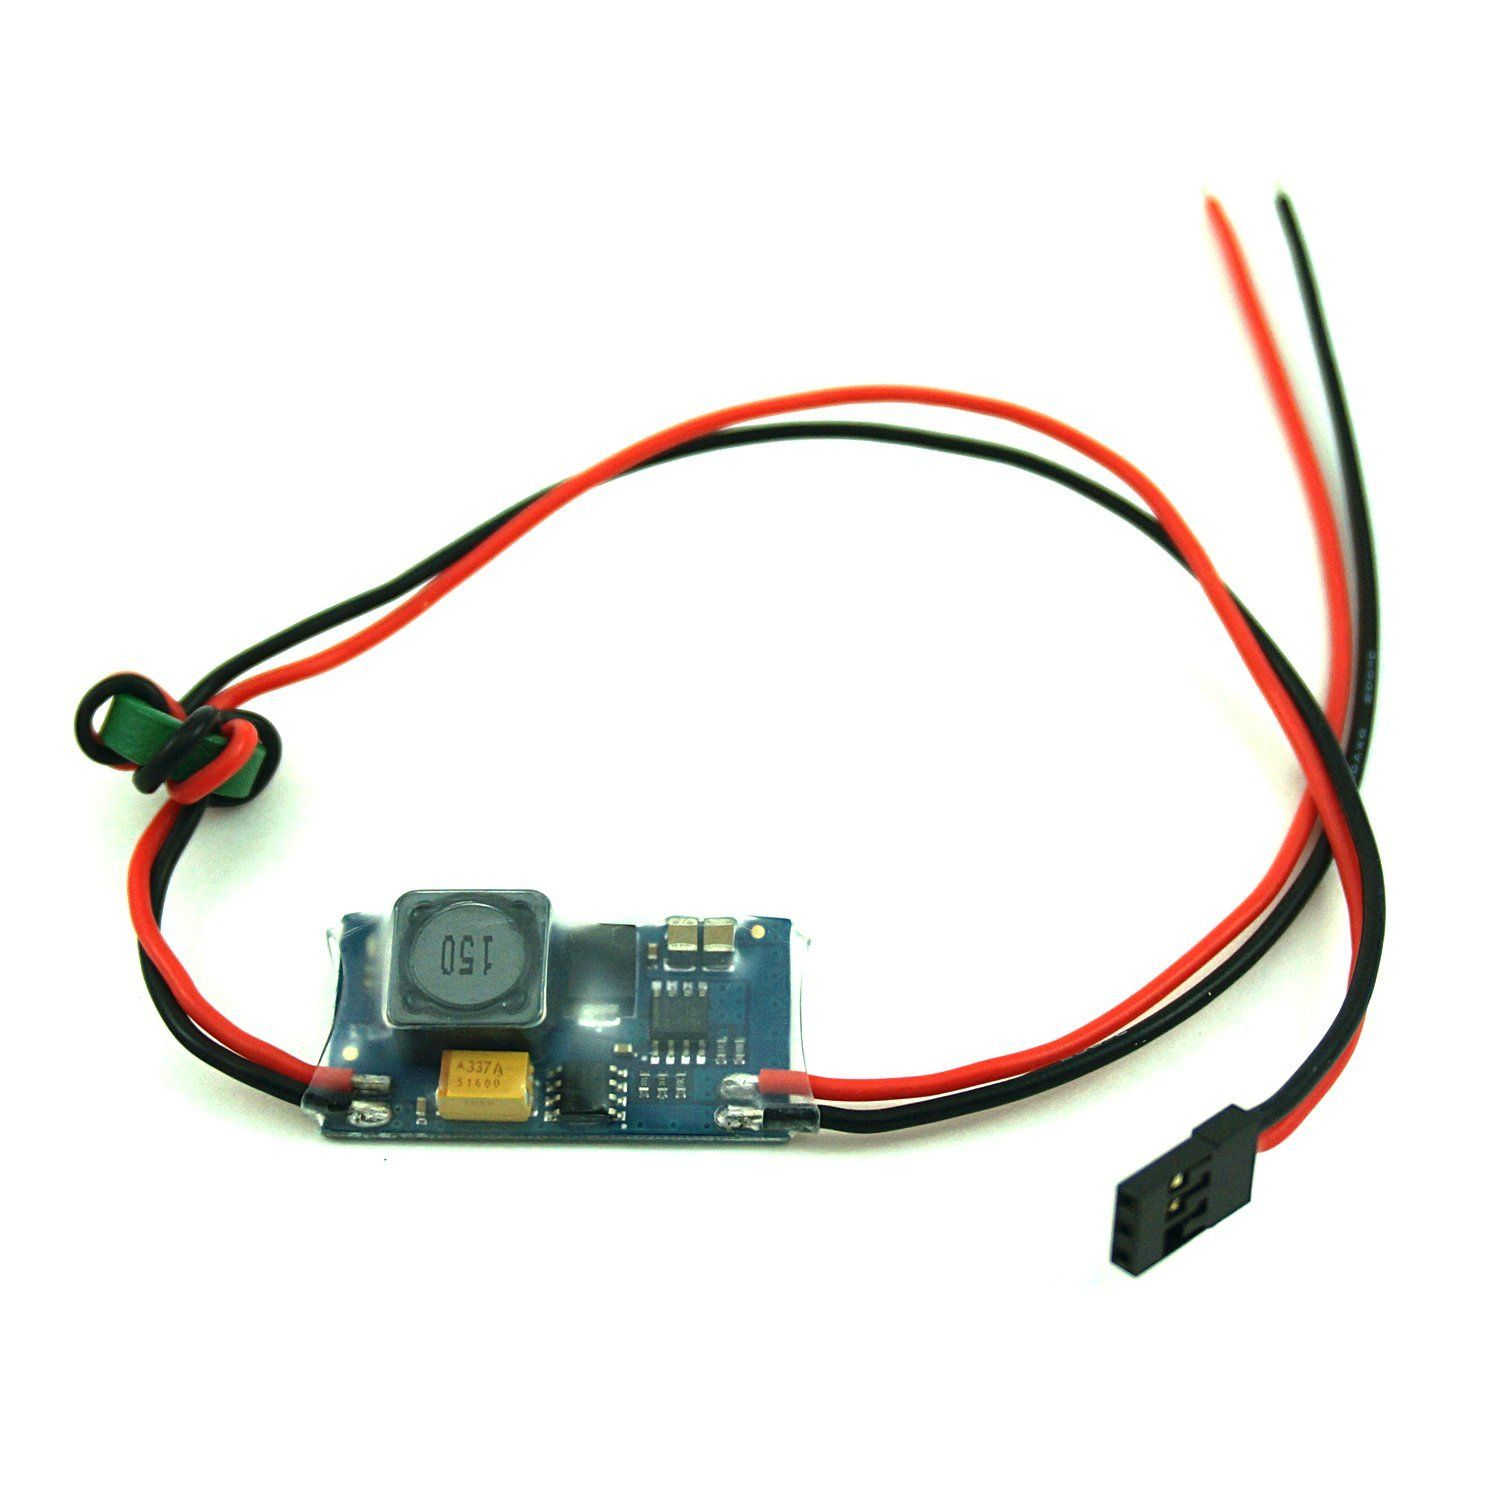 fpvfocus bec sbec ubec 5v 5a 5 volt 2s 8s lipo switching regulator for fpv equipment and systems [ 1500 x 1500 Pixel ]